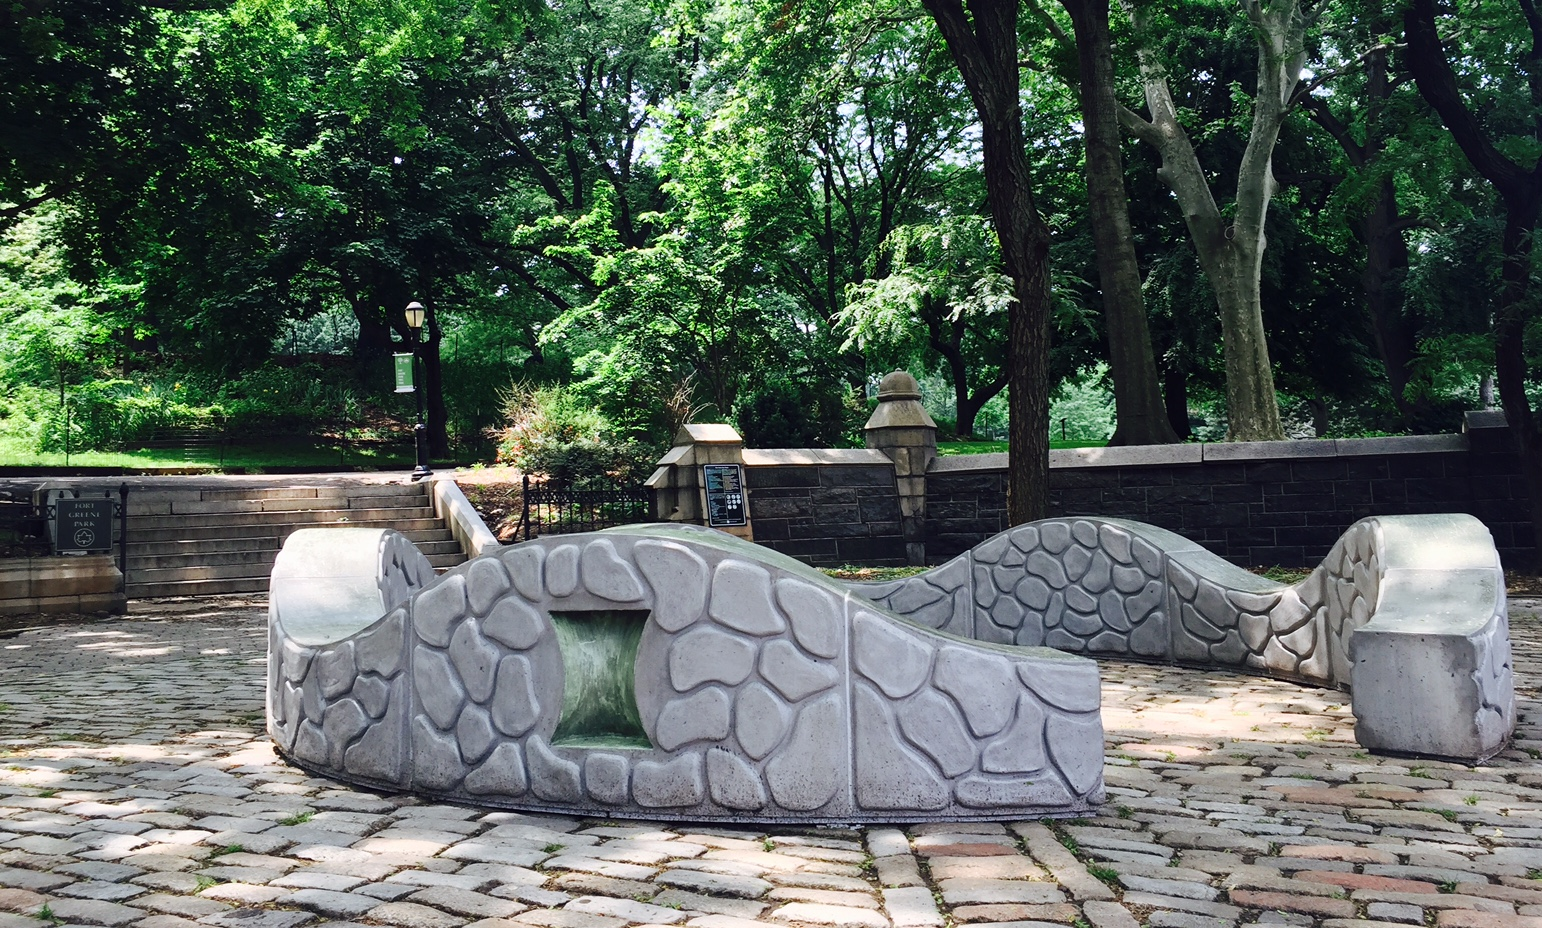 Blythe Cain's Circadia is on display through May 2018 on Myrtle Avenue and Washington Park.